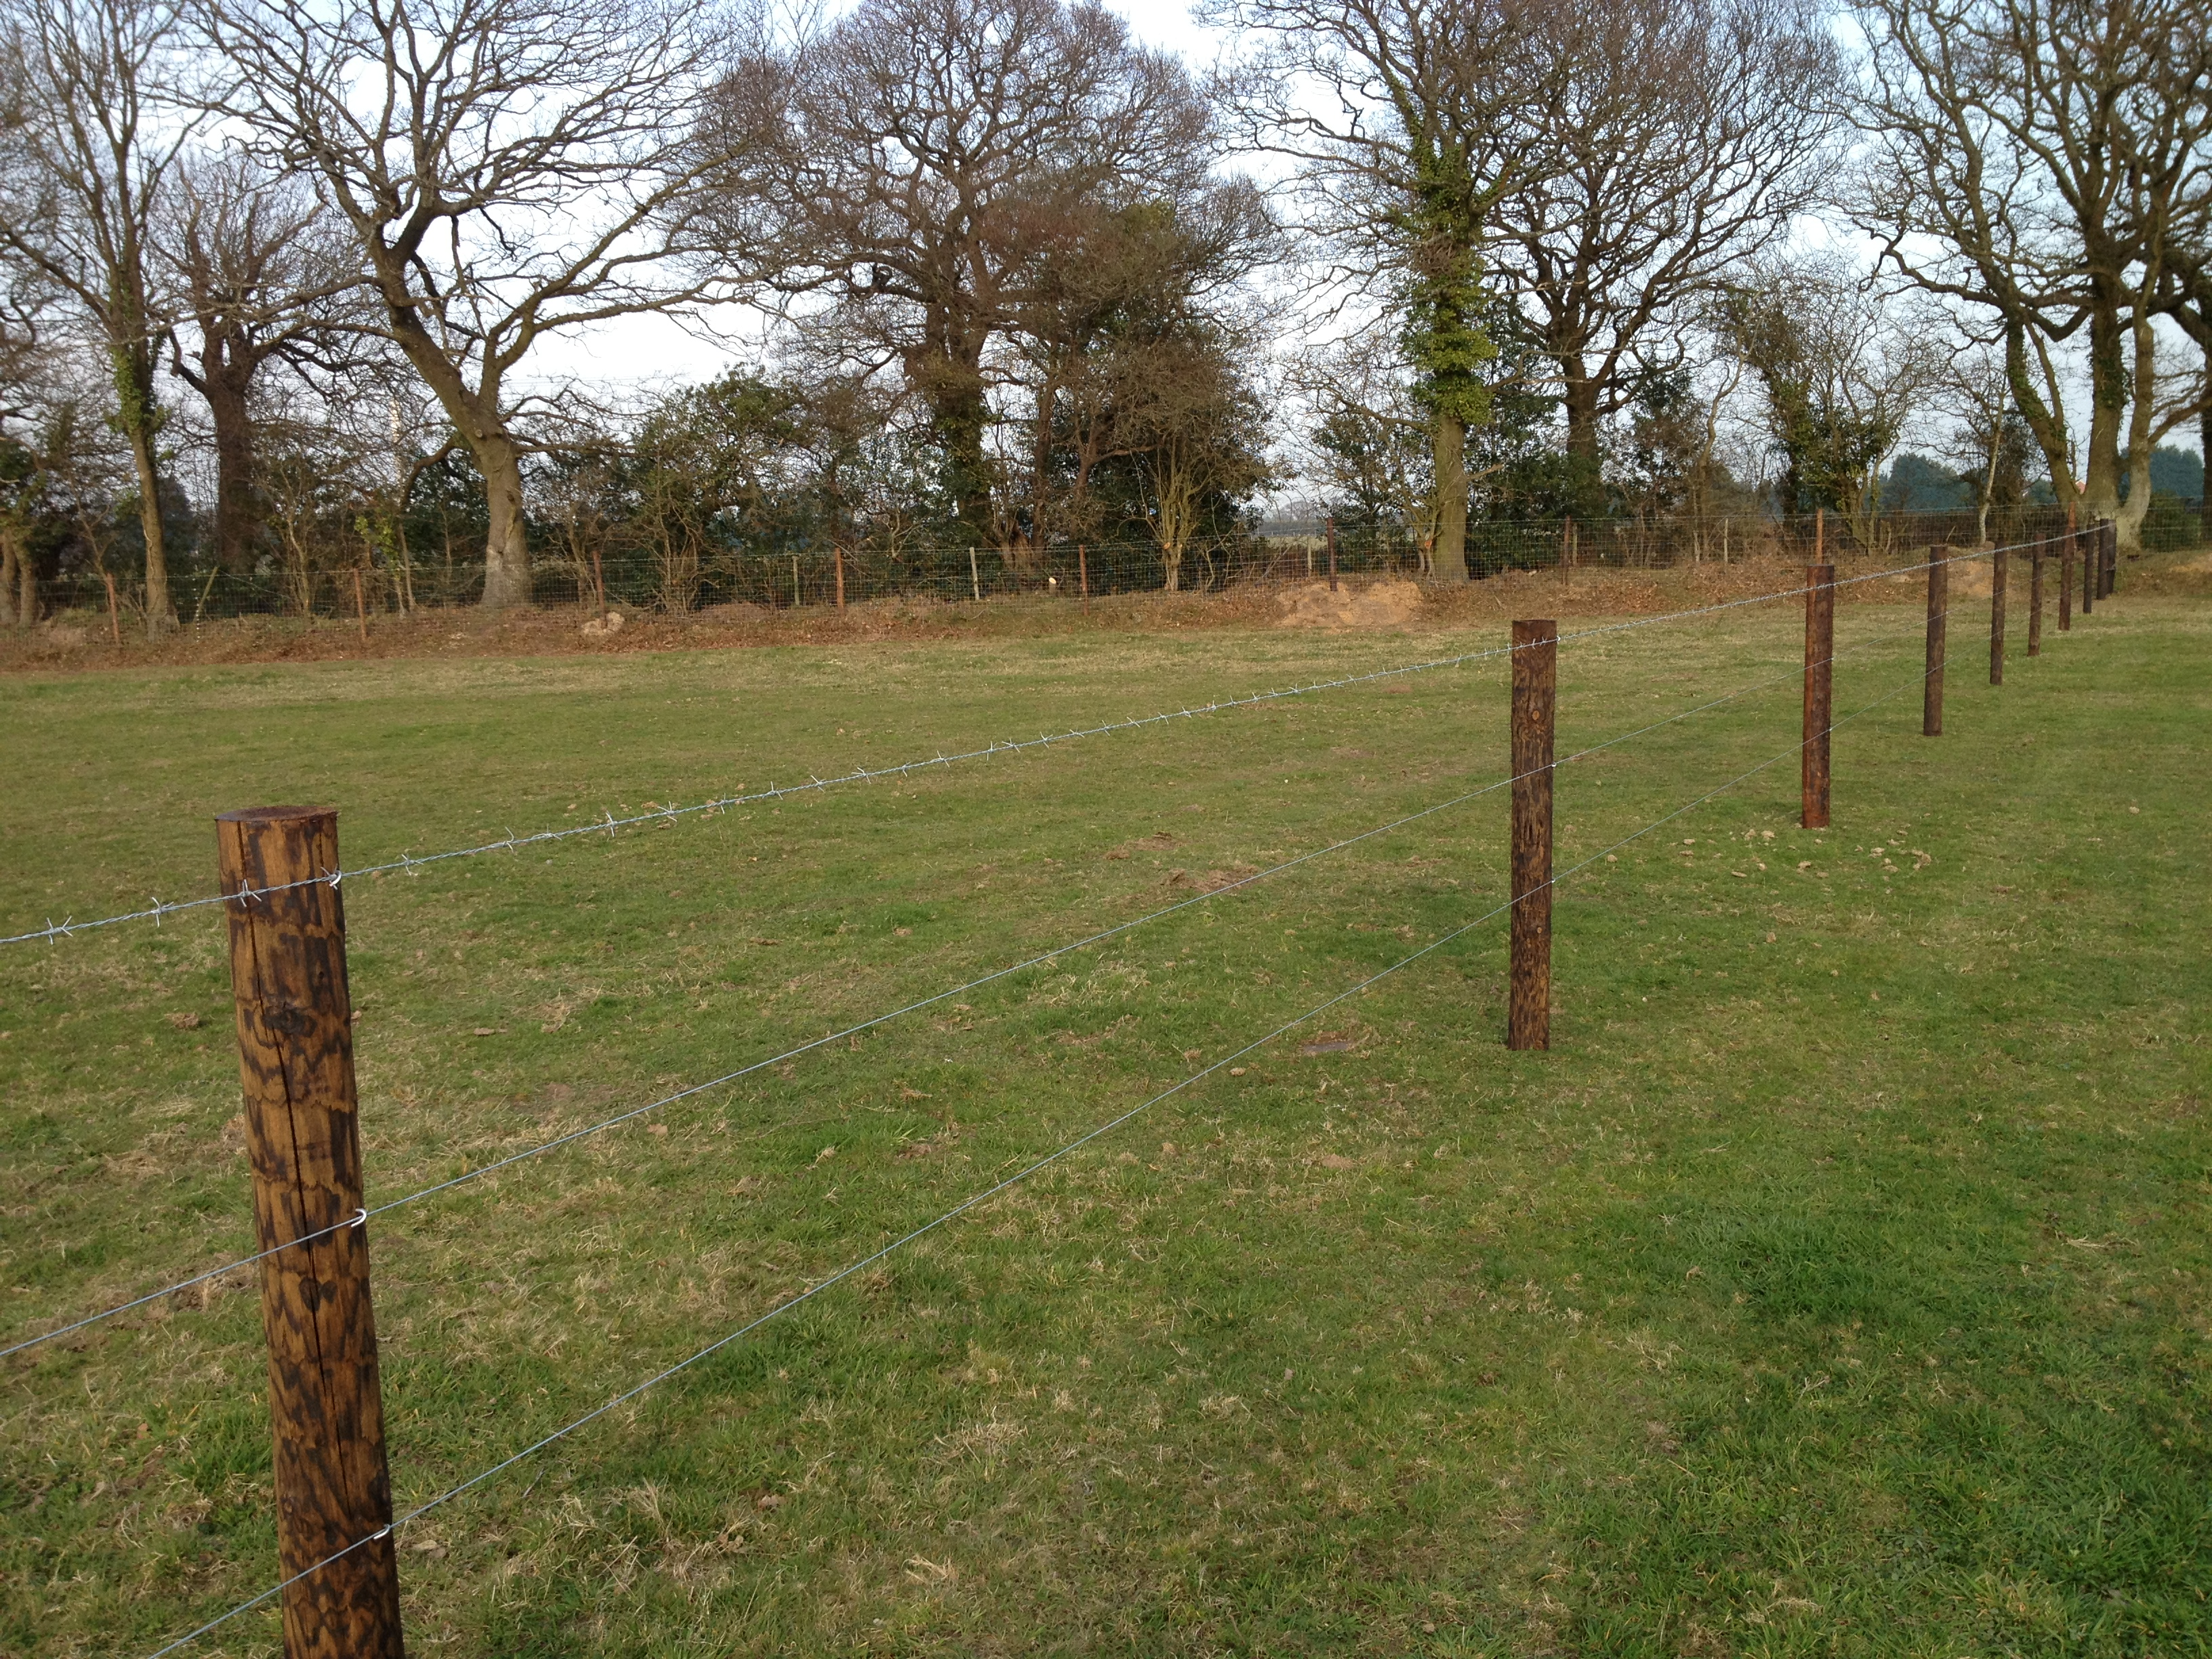 wire-fencing-on-creosoted-posts